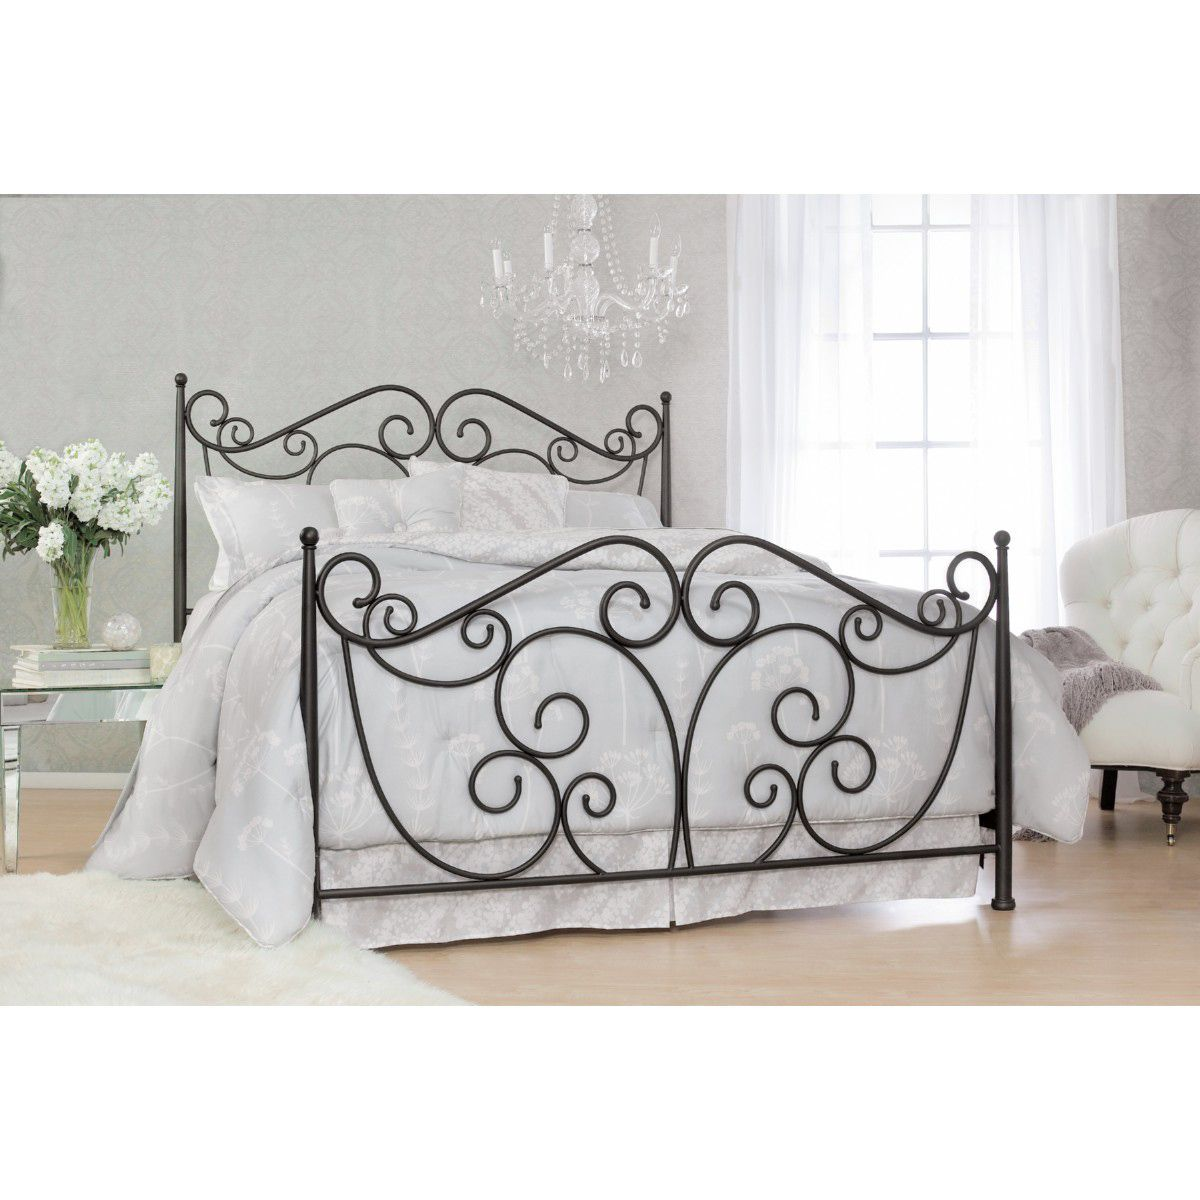 Scroll Decorative Metal Bed Frame In Dark Bronze Powder Coated Steel Queen Bed Frame Queen Metal Scro Iron